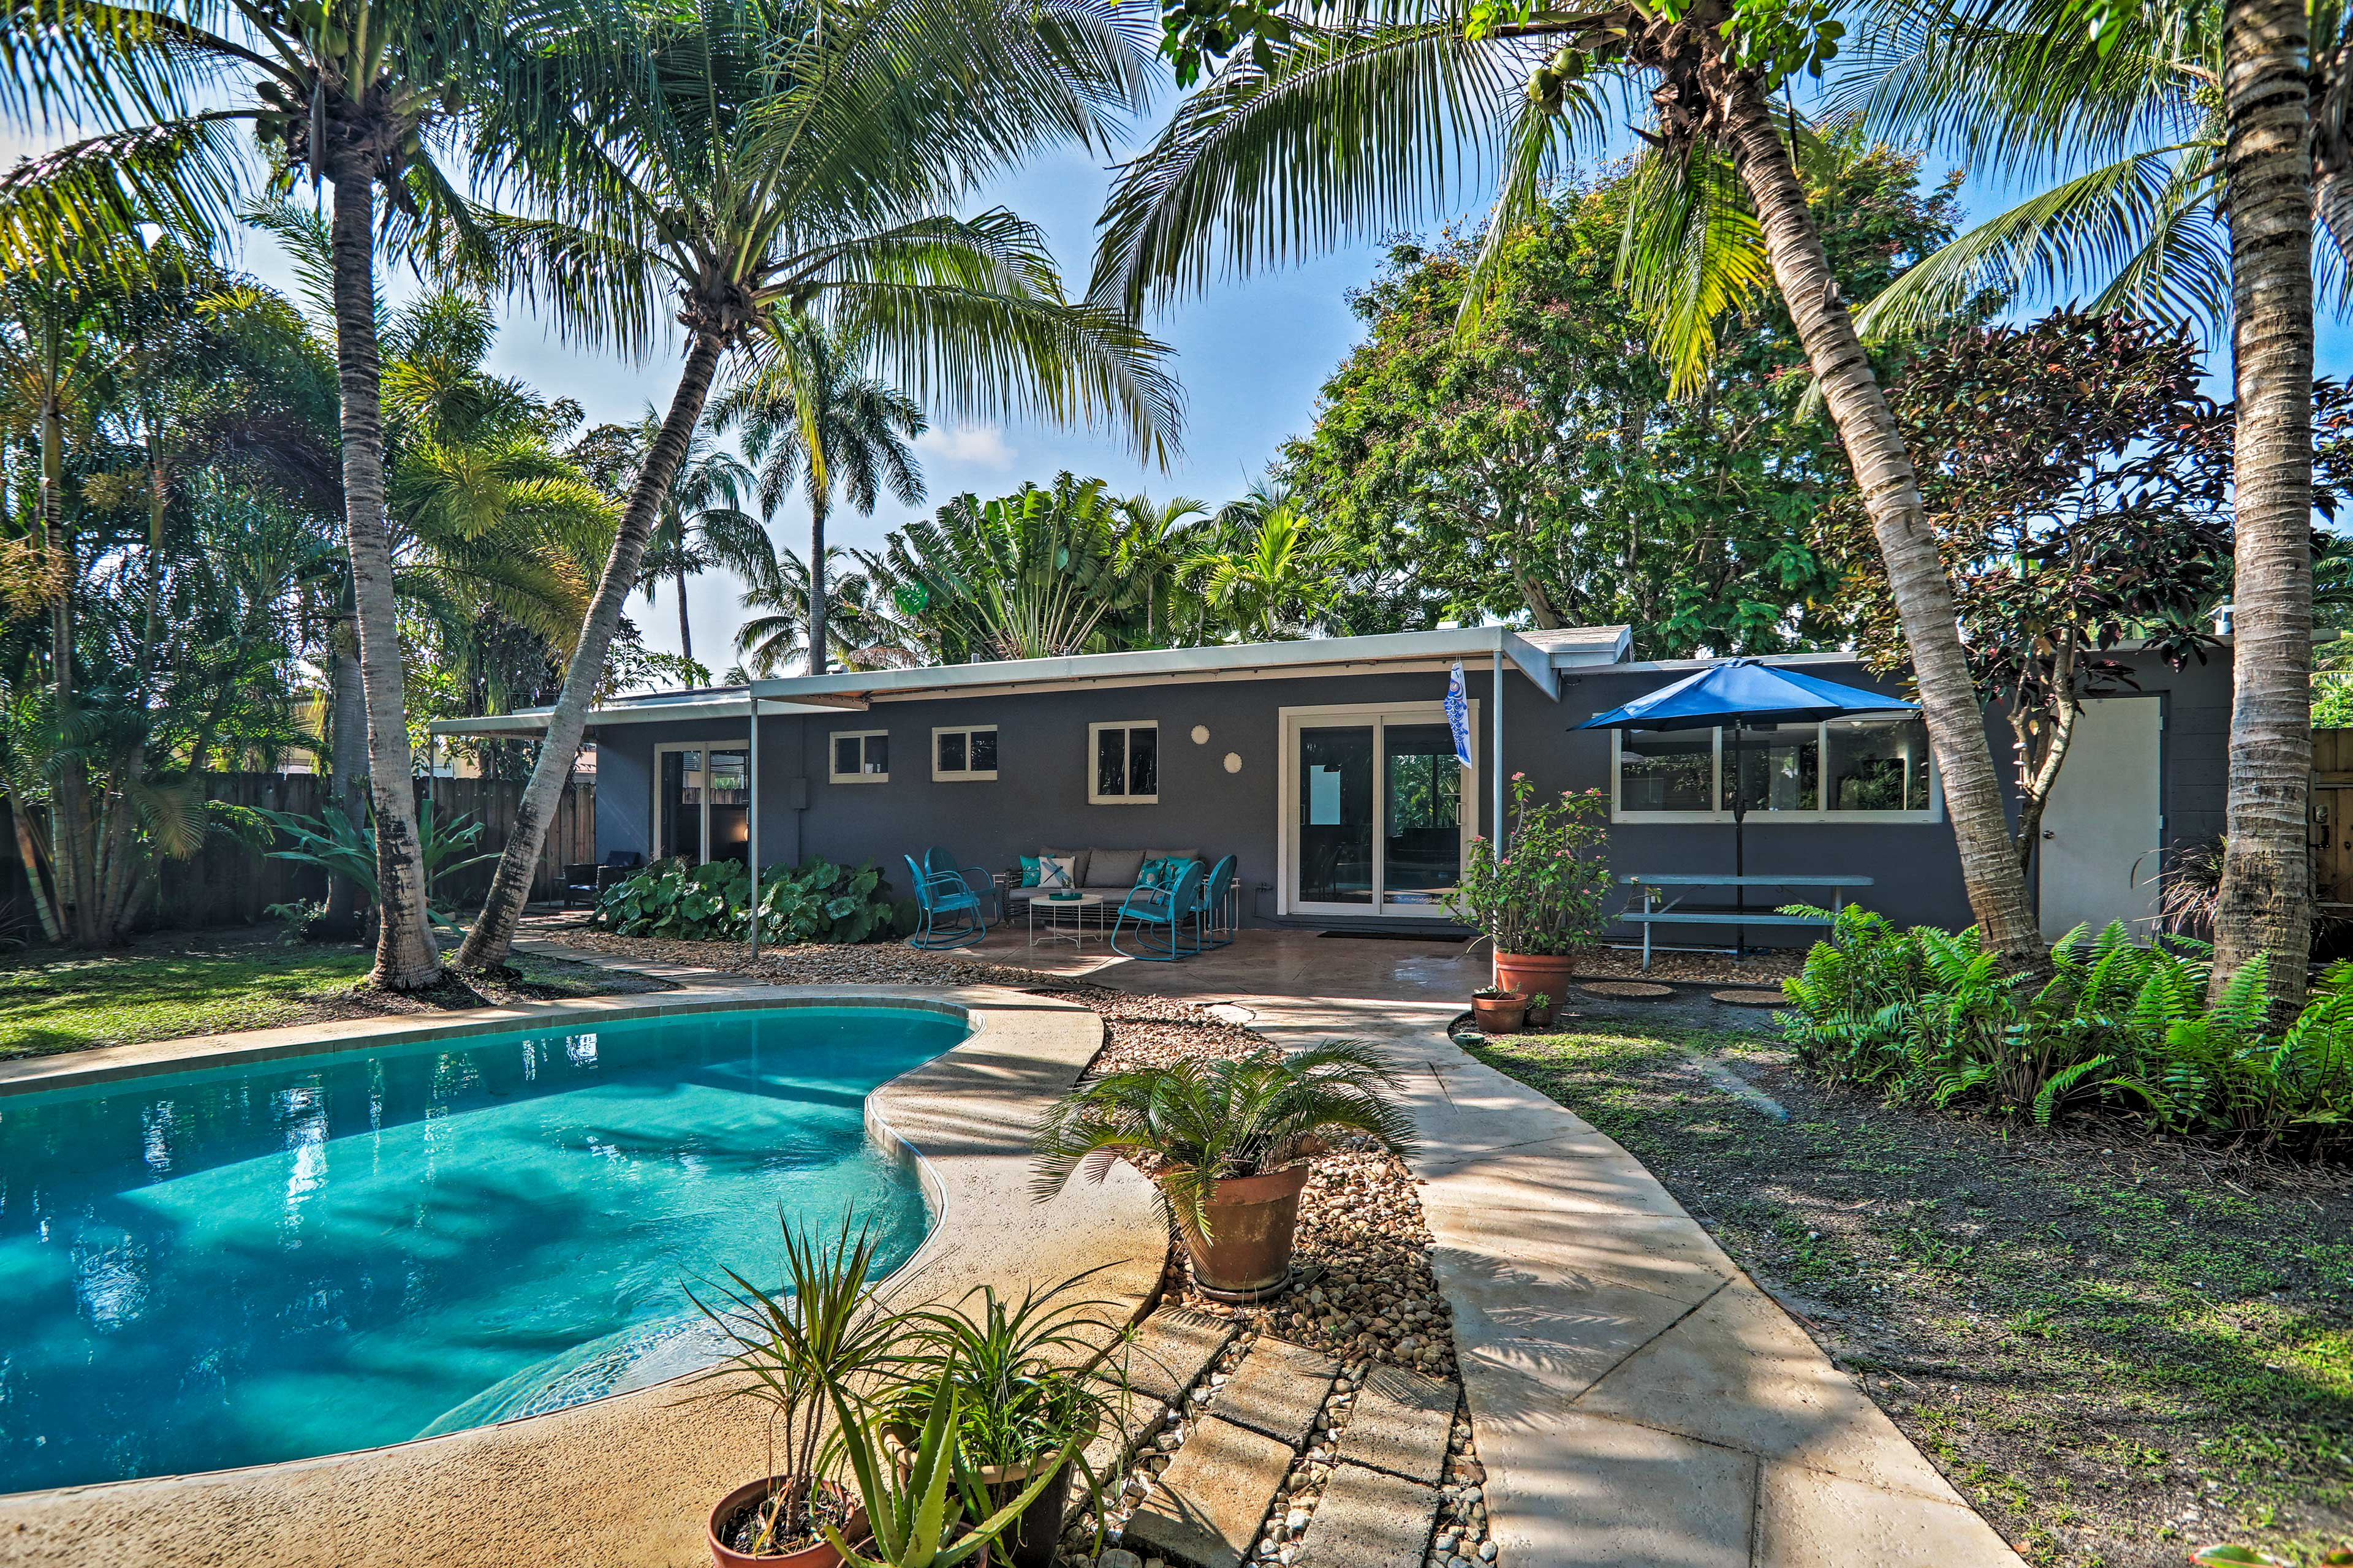 A private Sunshine State oasis awaits 6 guests at this vacation rental house!